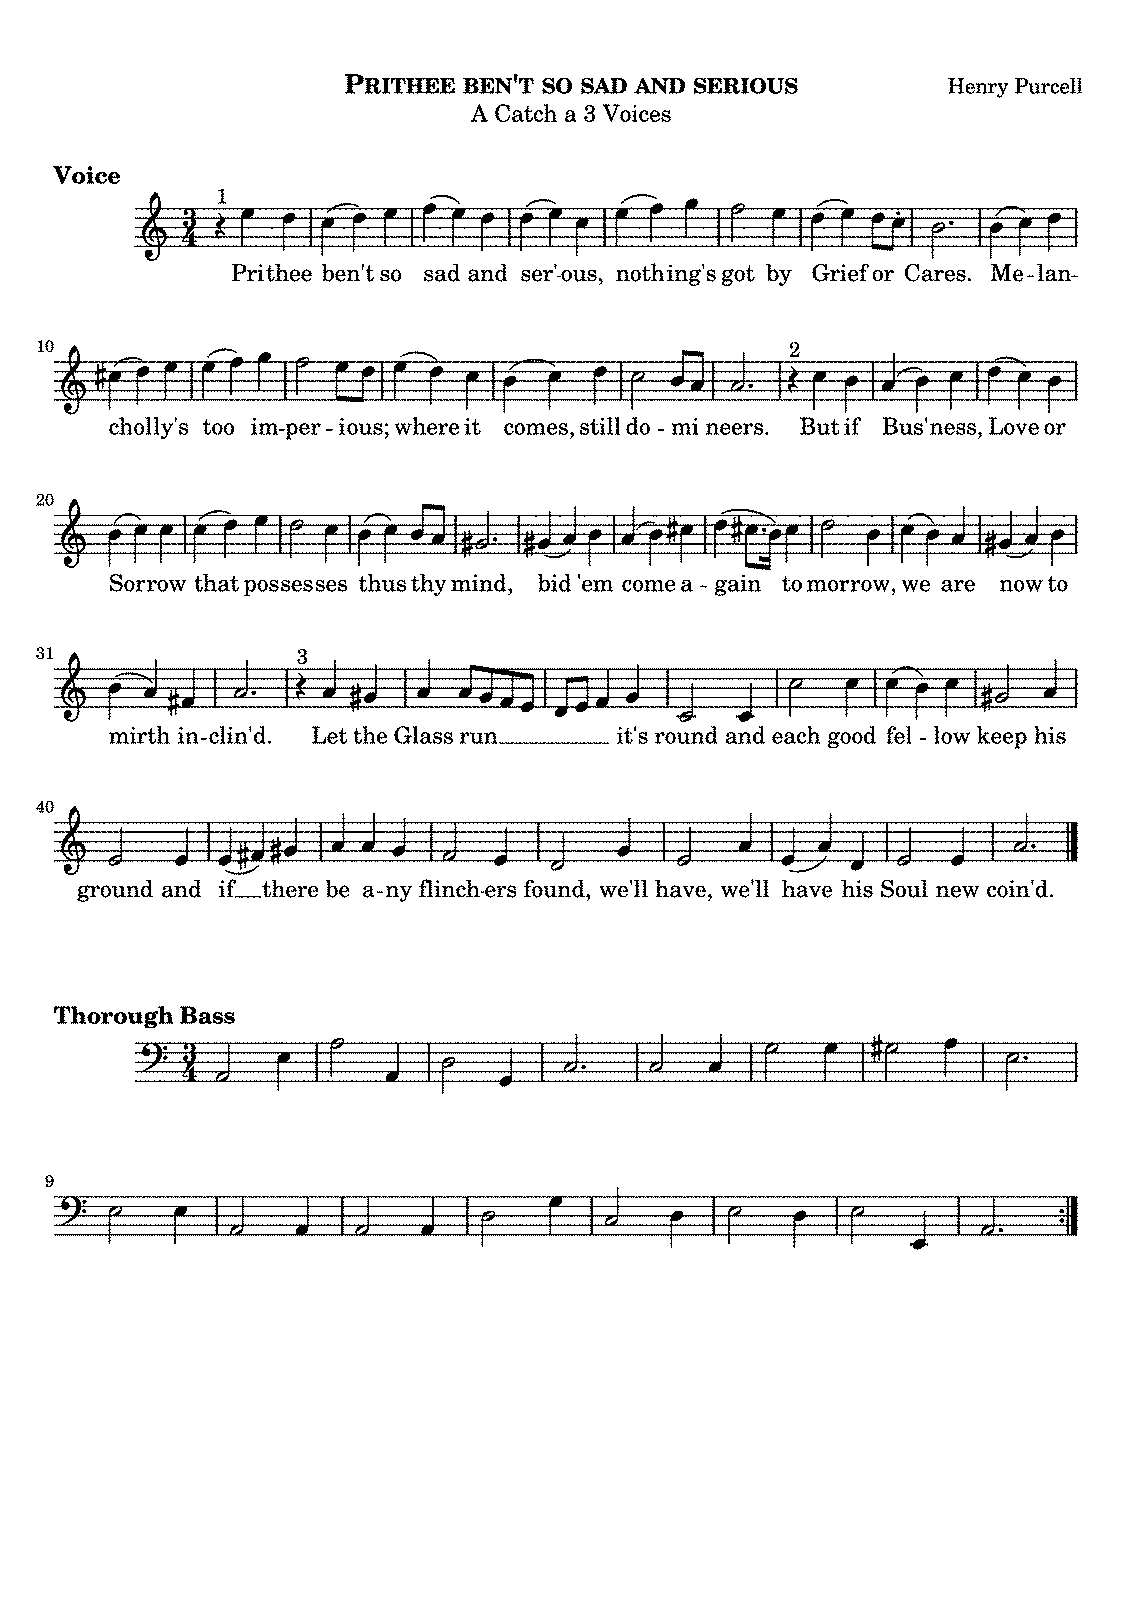 PMLP70403-Purcell - Prithee ben't so sad and serious.pdf